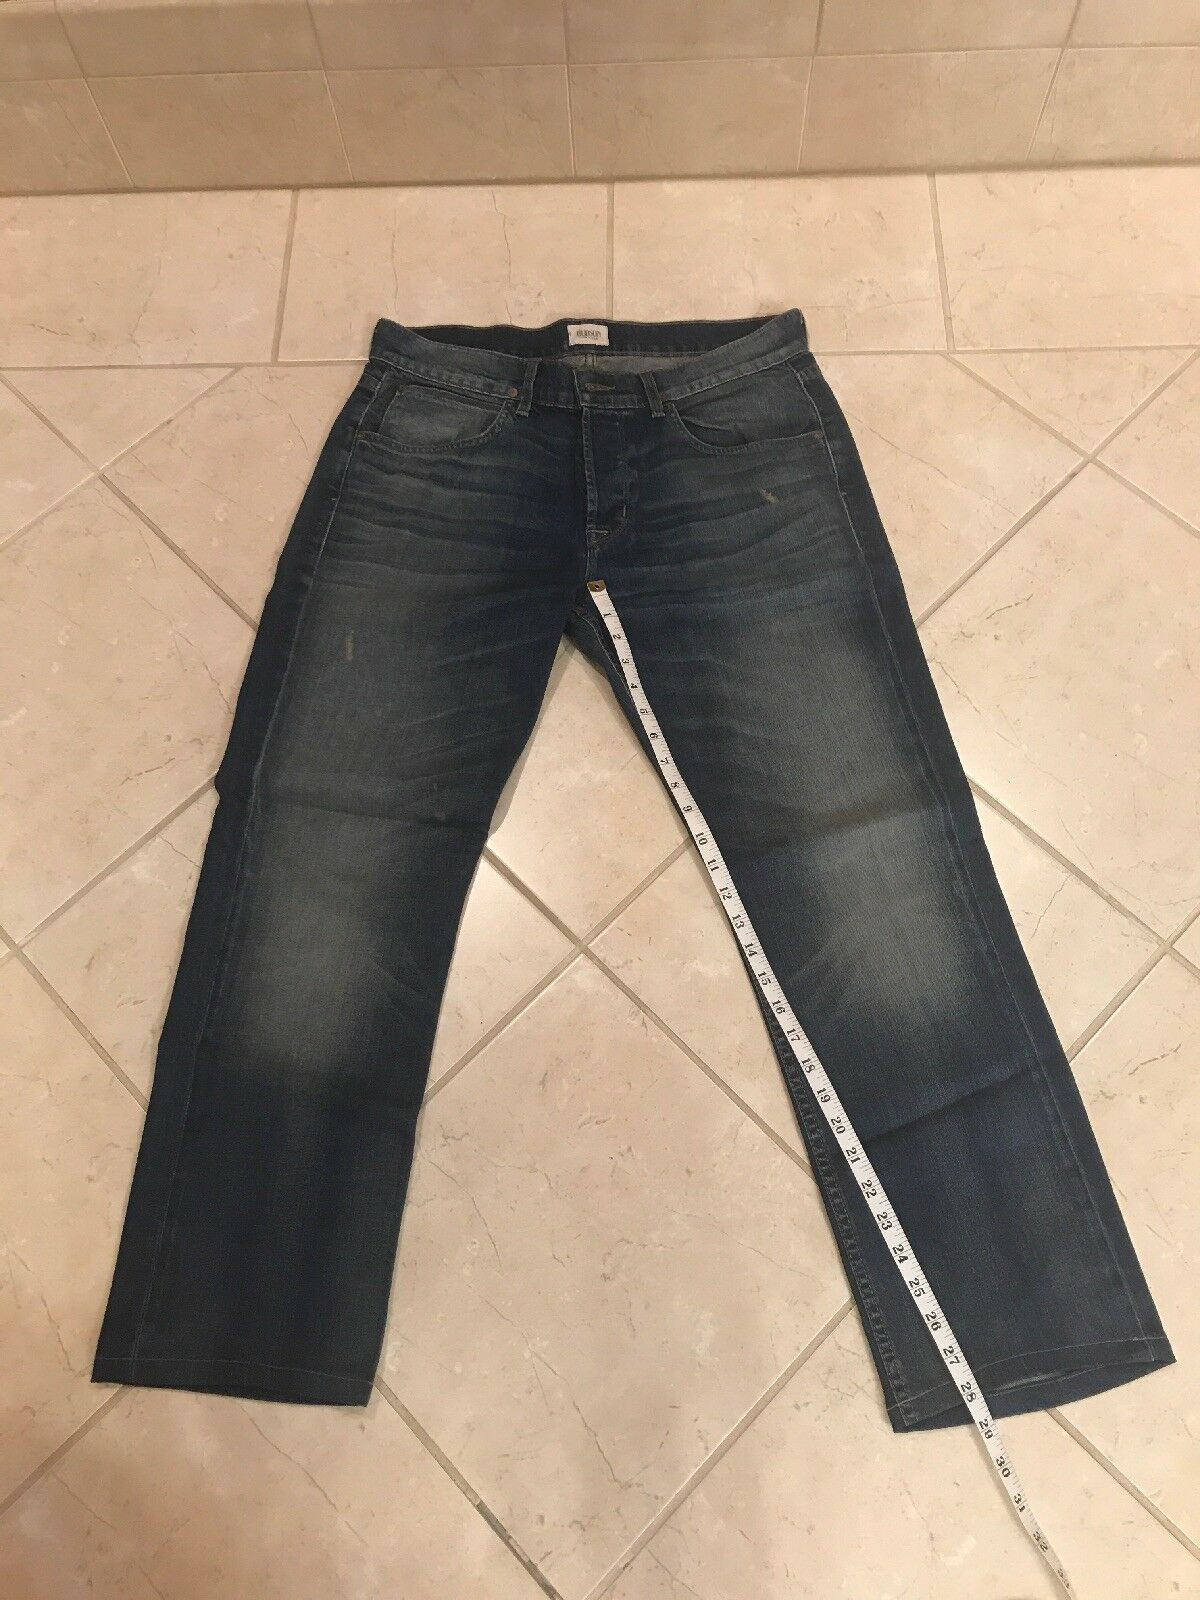 Mens Hudson Byron Straight Jeans bluee  34 x 29 button fly